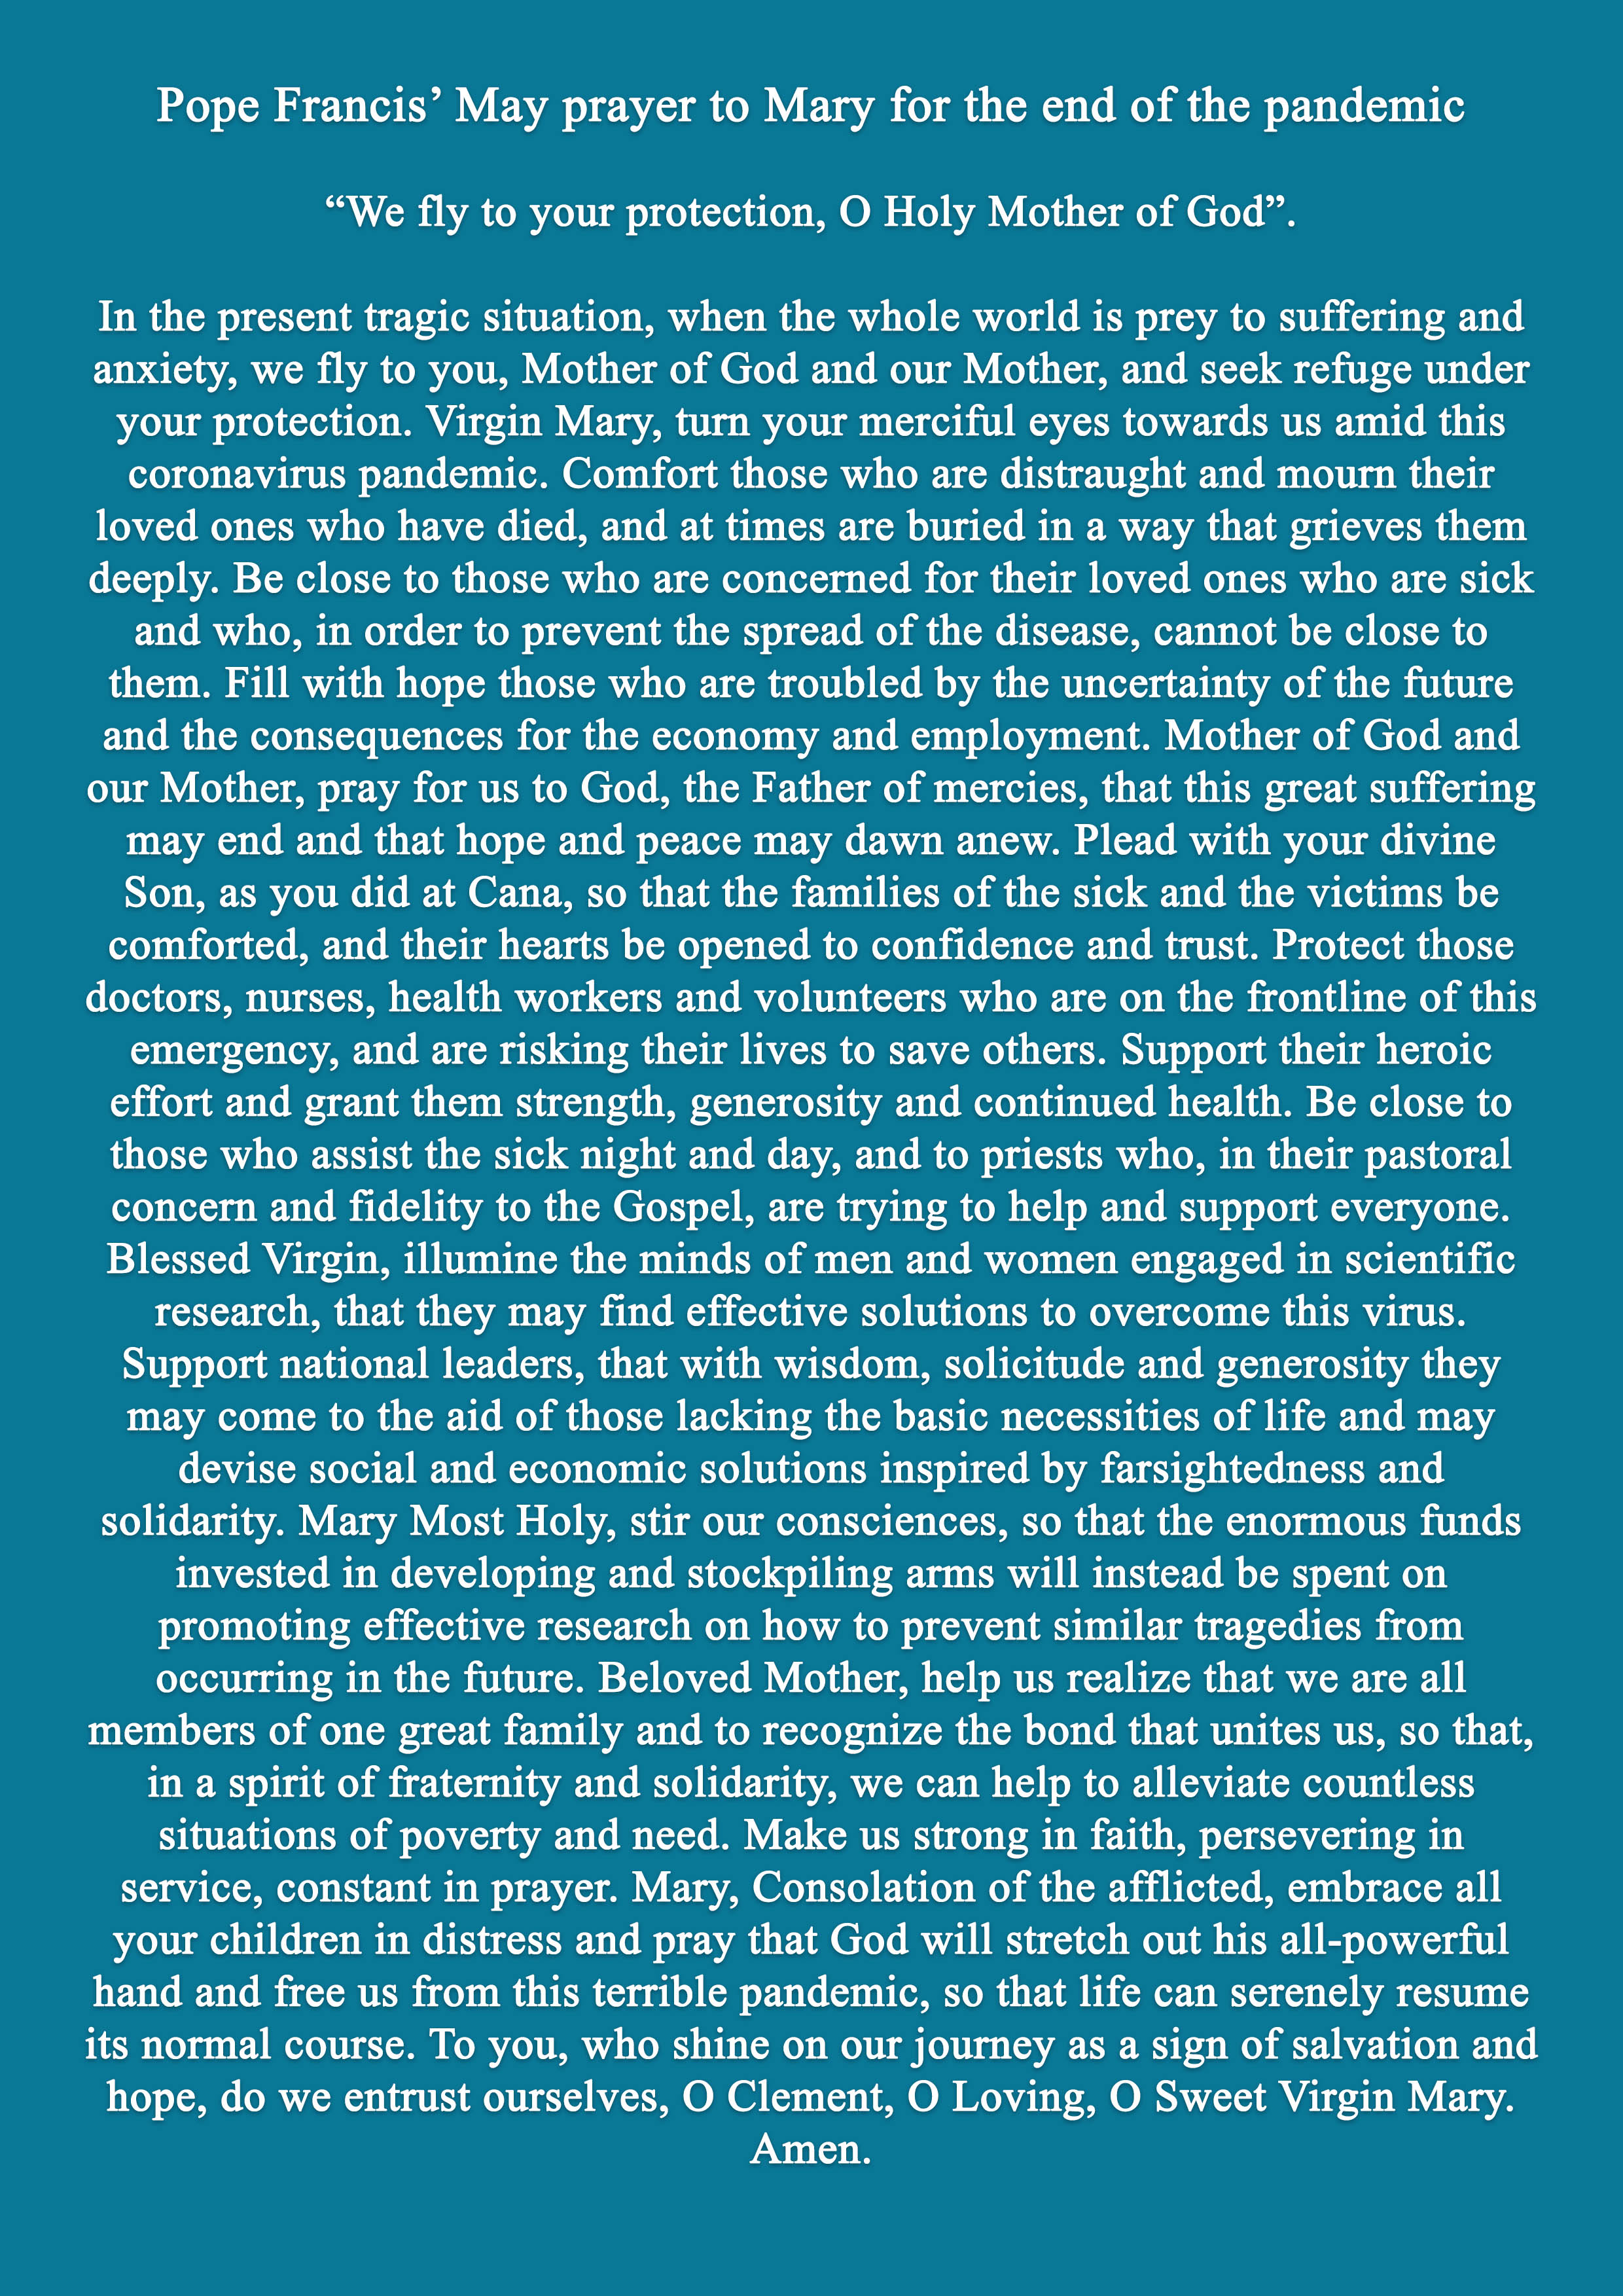 Pope prayer for the end of the Pandemic